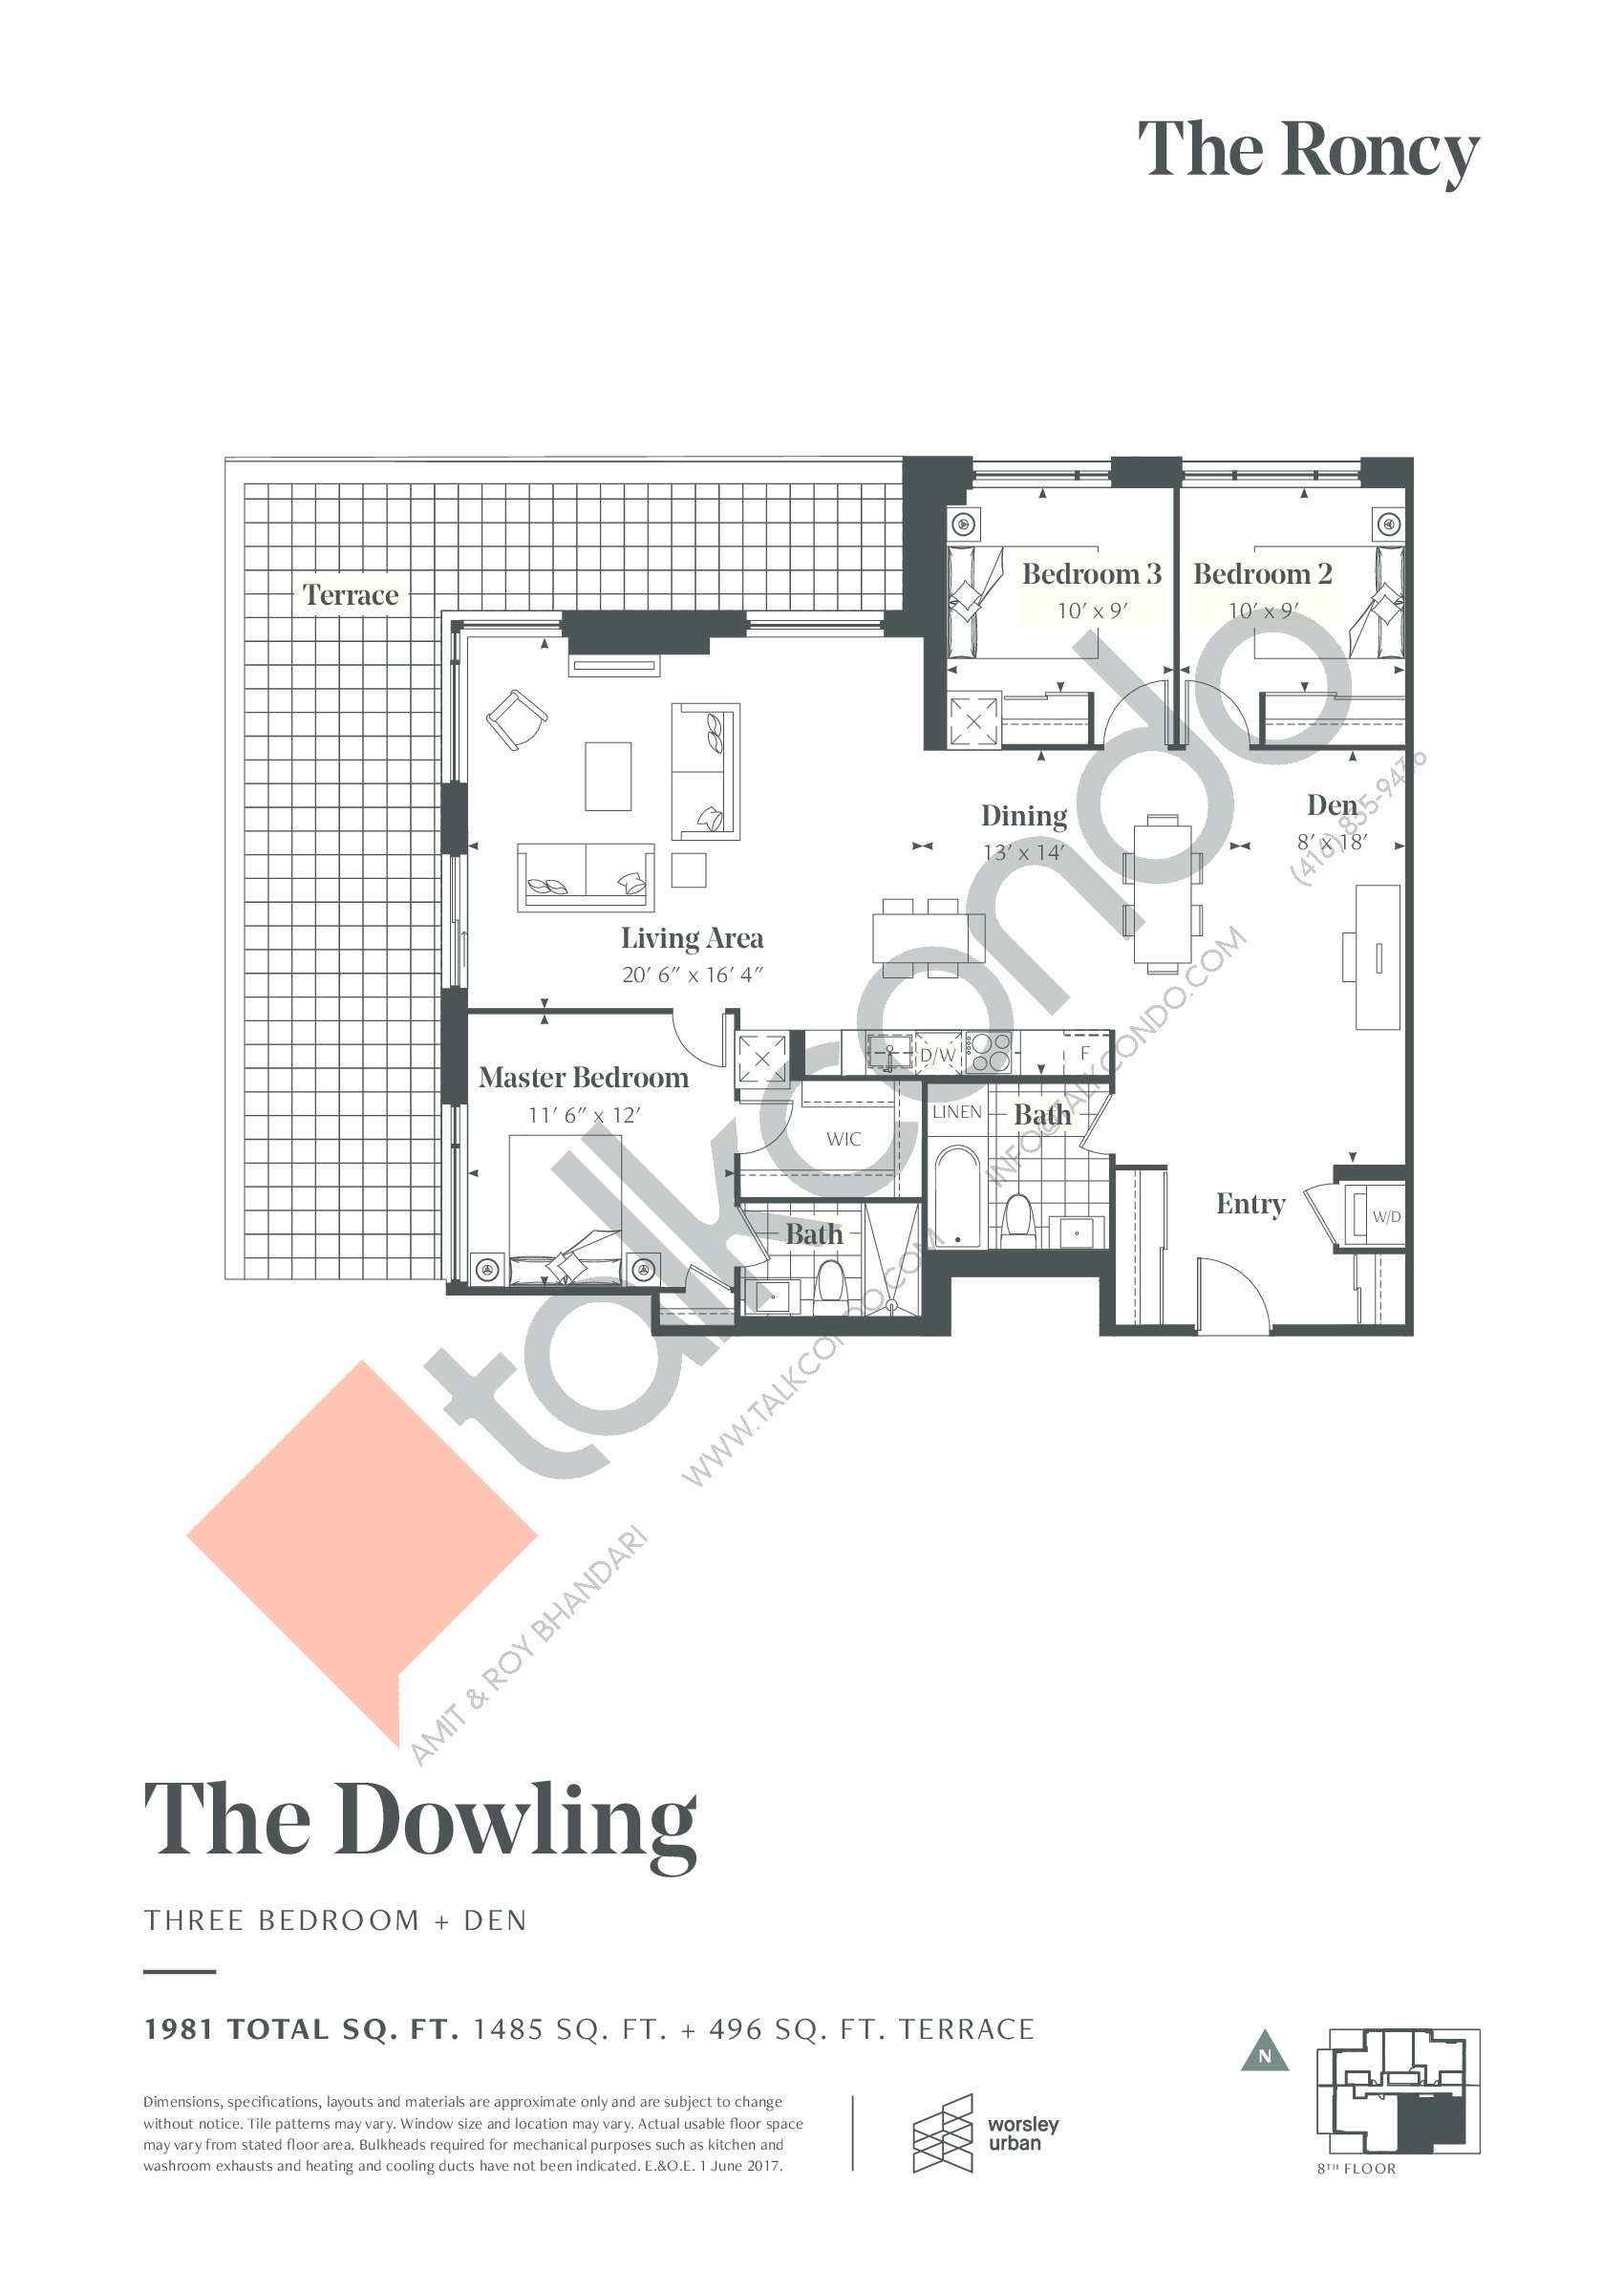 The Dowling Floor Plan at The Roncy Condos - 1485 sq.ft